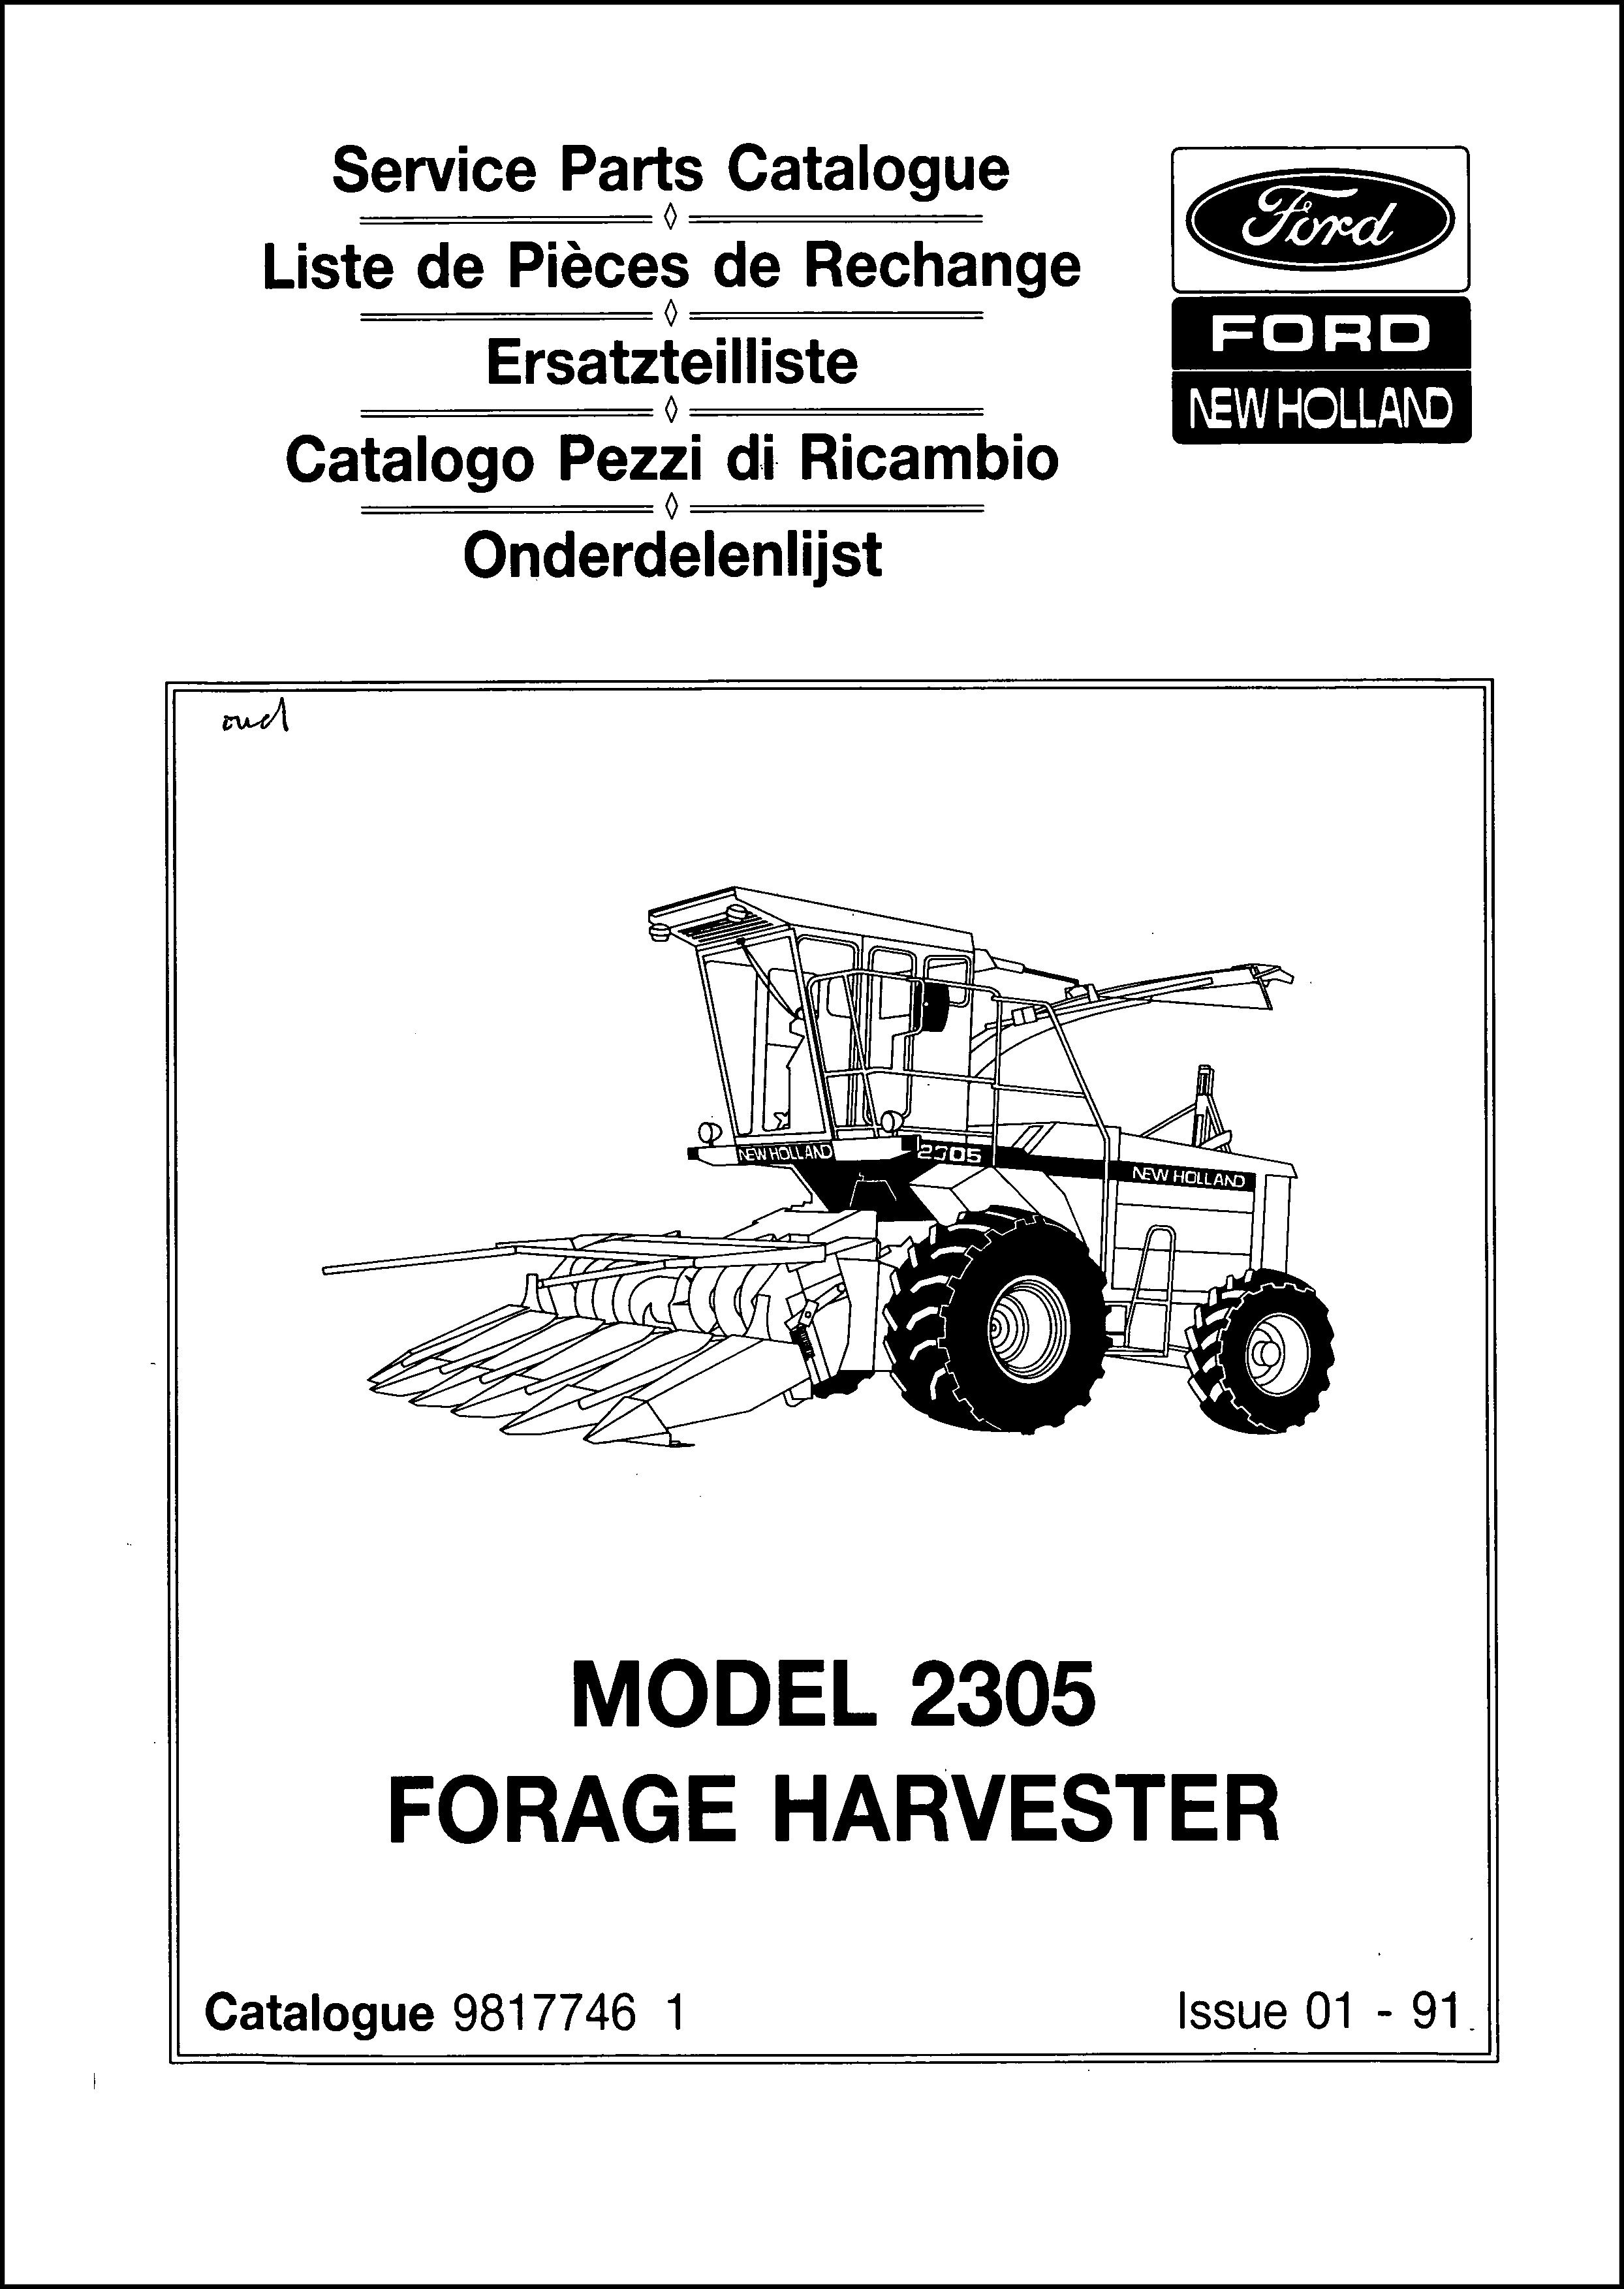 Ford New Holland 2305 Parts Manual for Service Forage